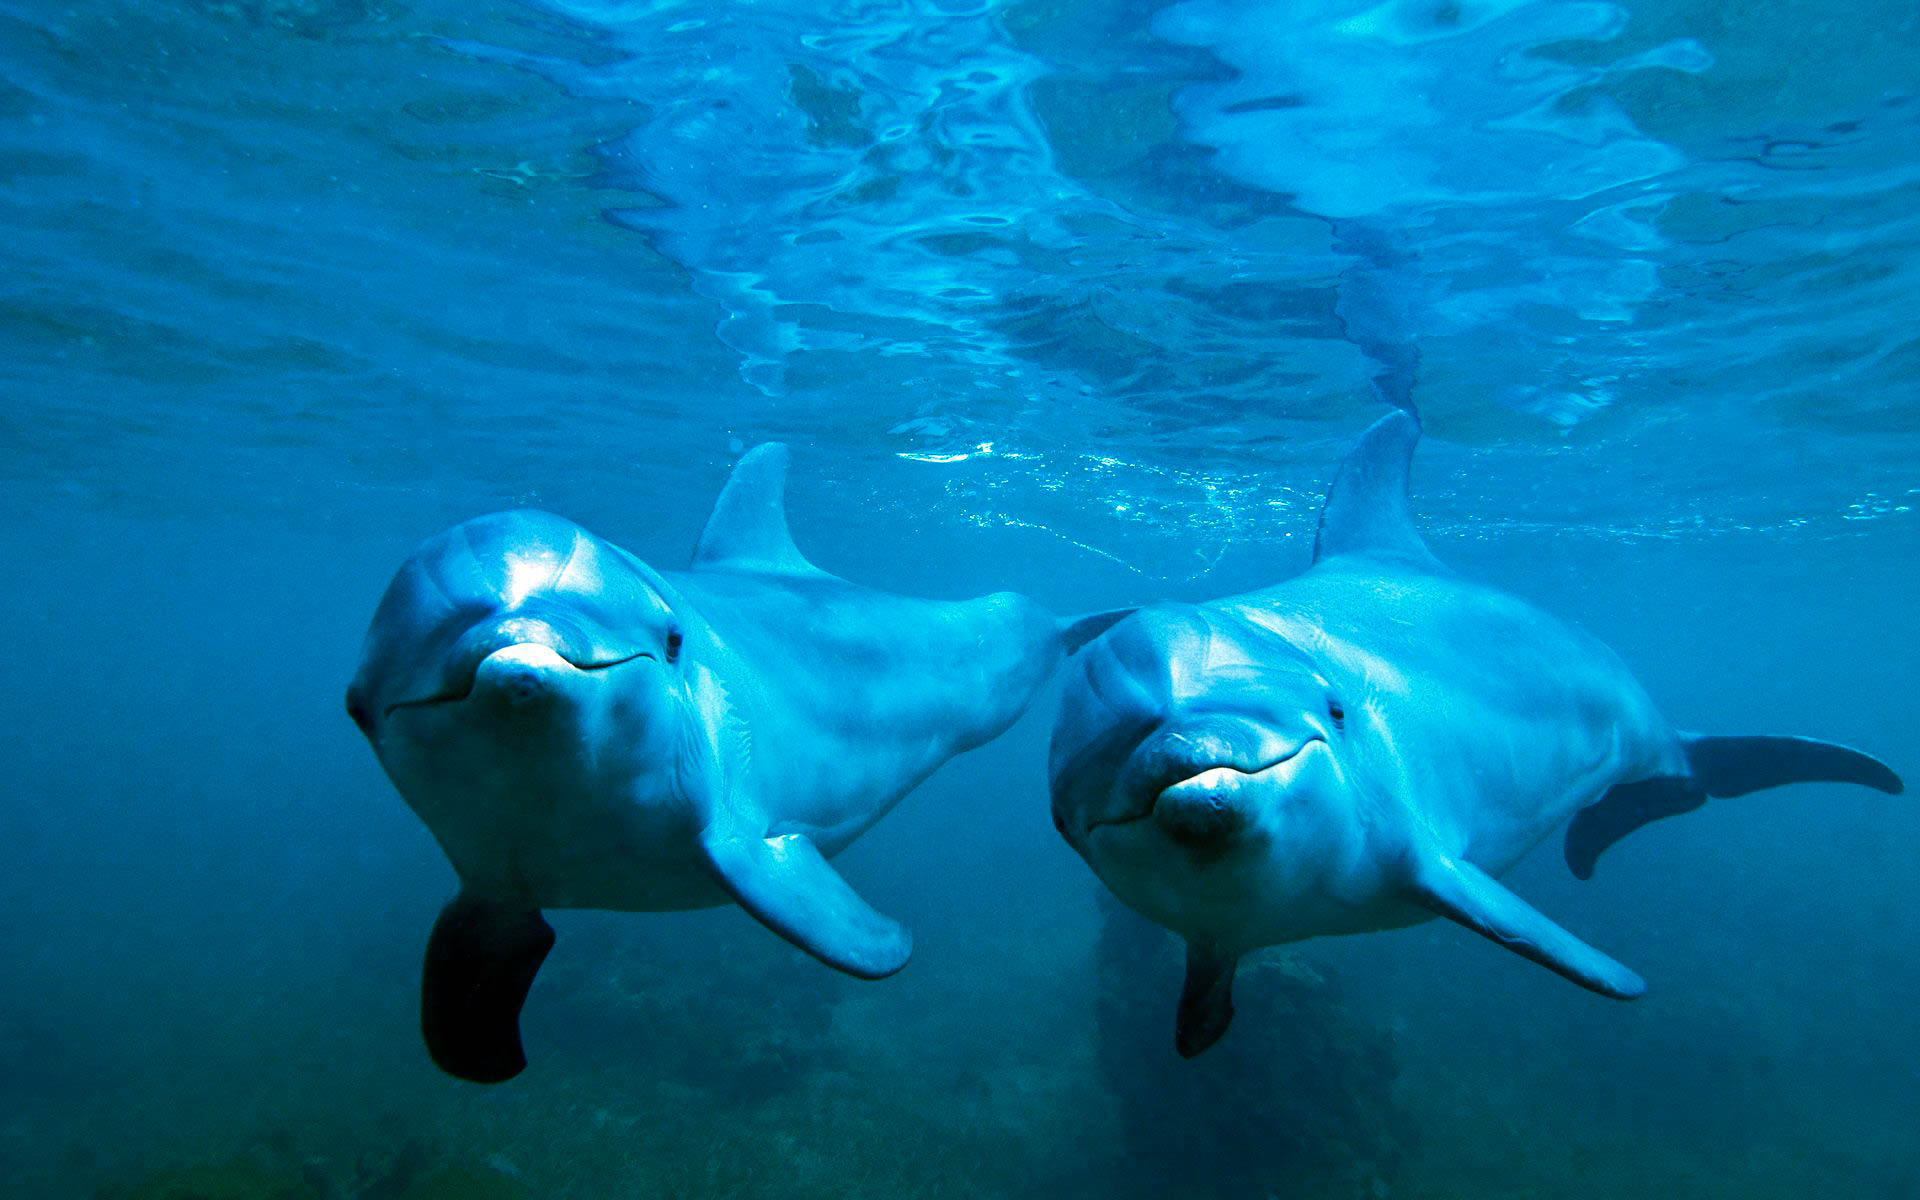 Cute Baby Girl Wallpaper For Desktop Full Screen Dolphin Awesome Hd Pictures Images Amp Backgrounds High